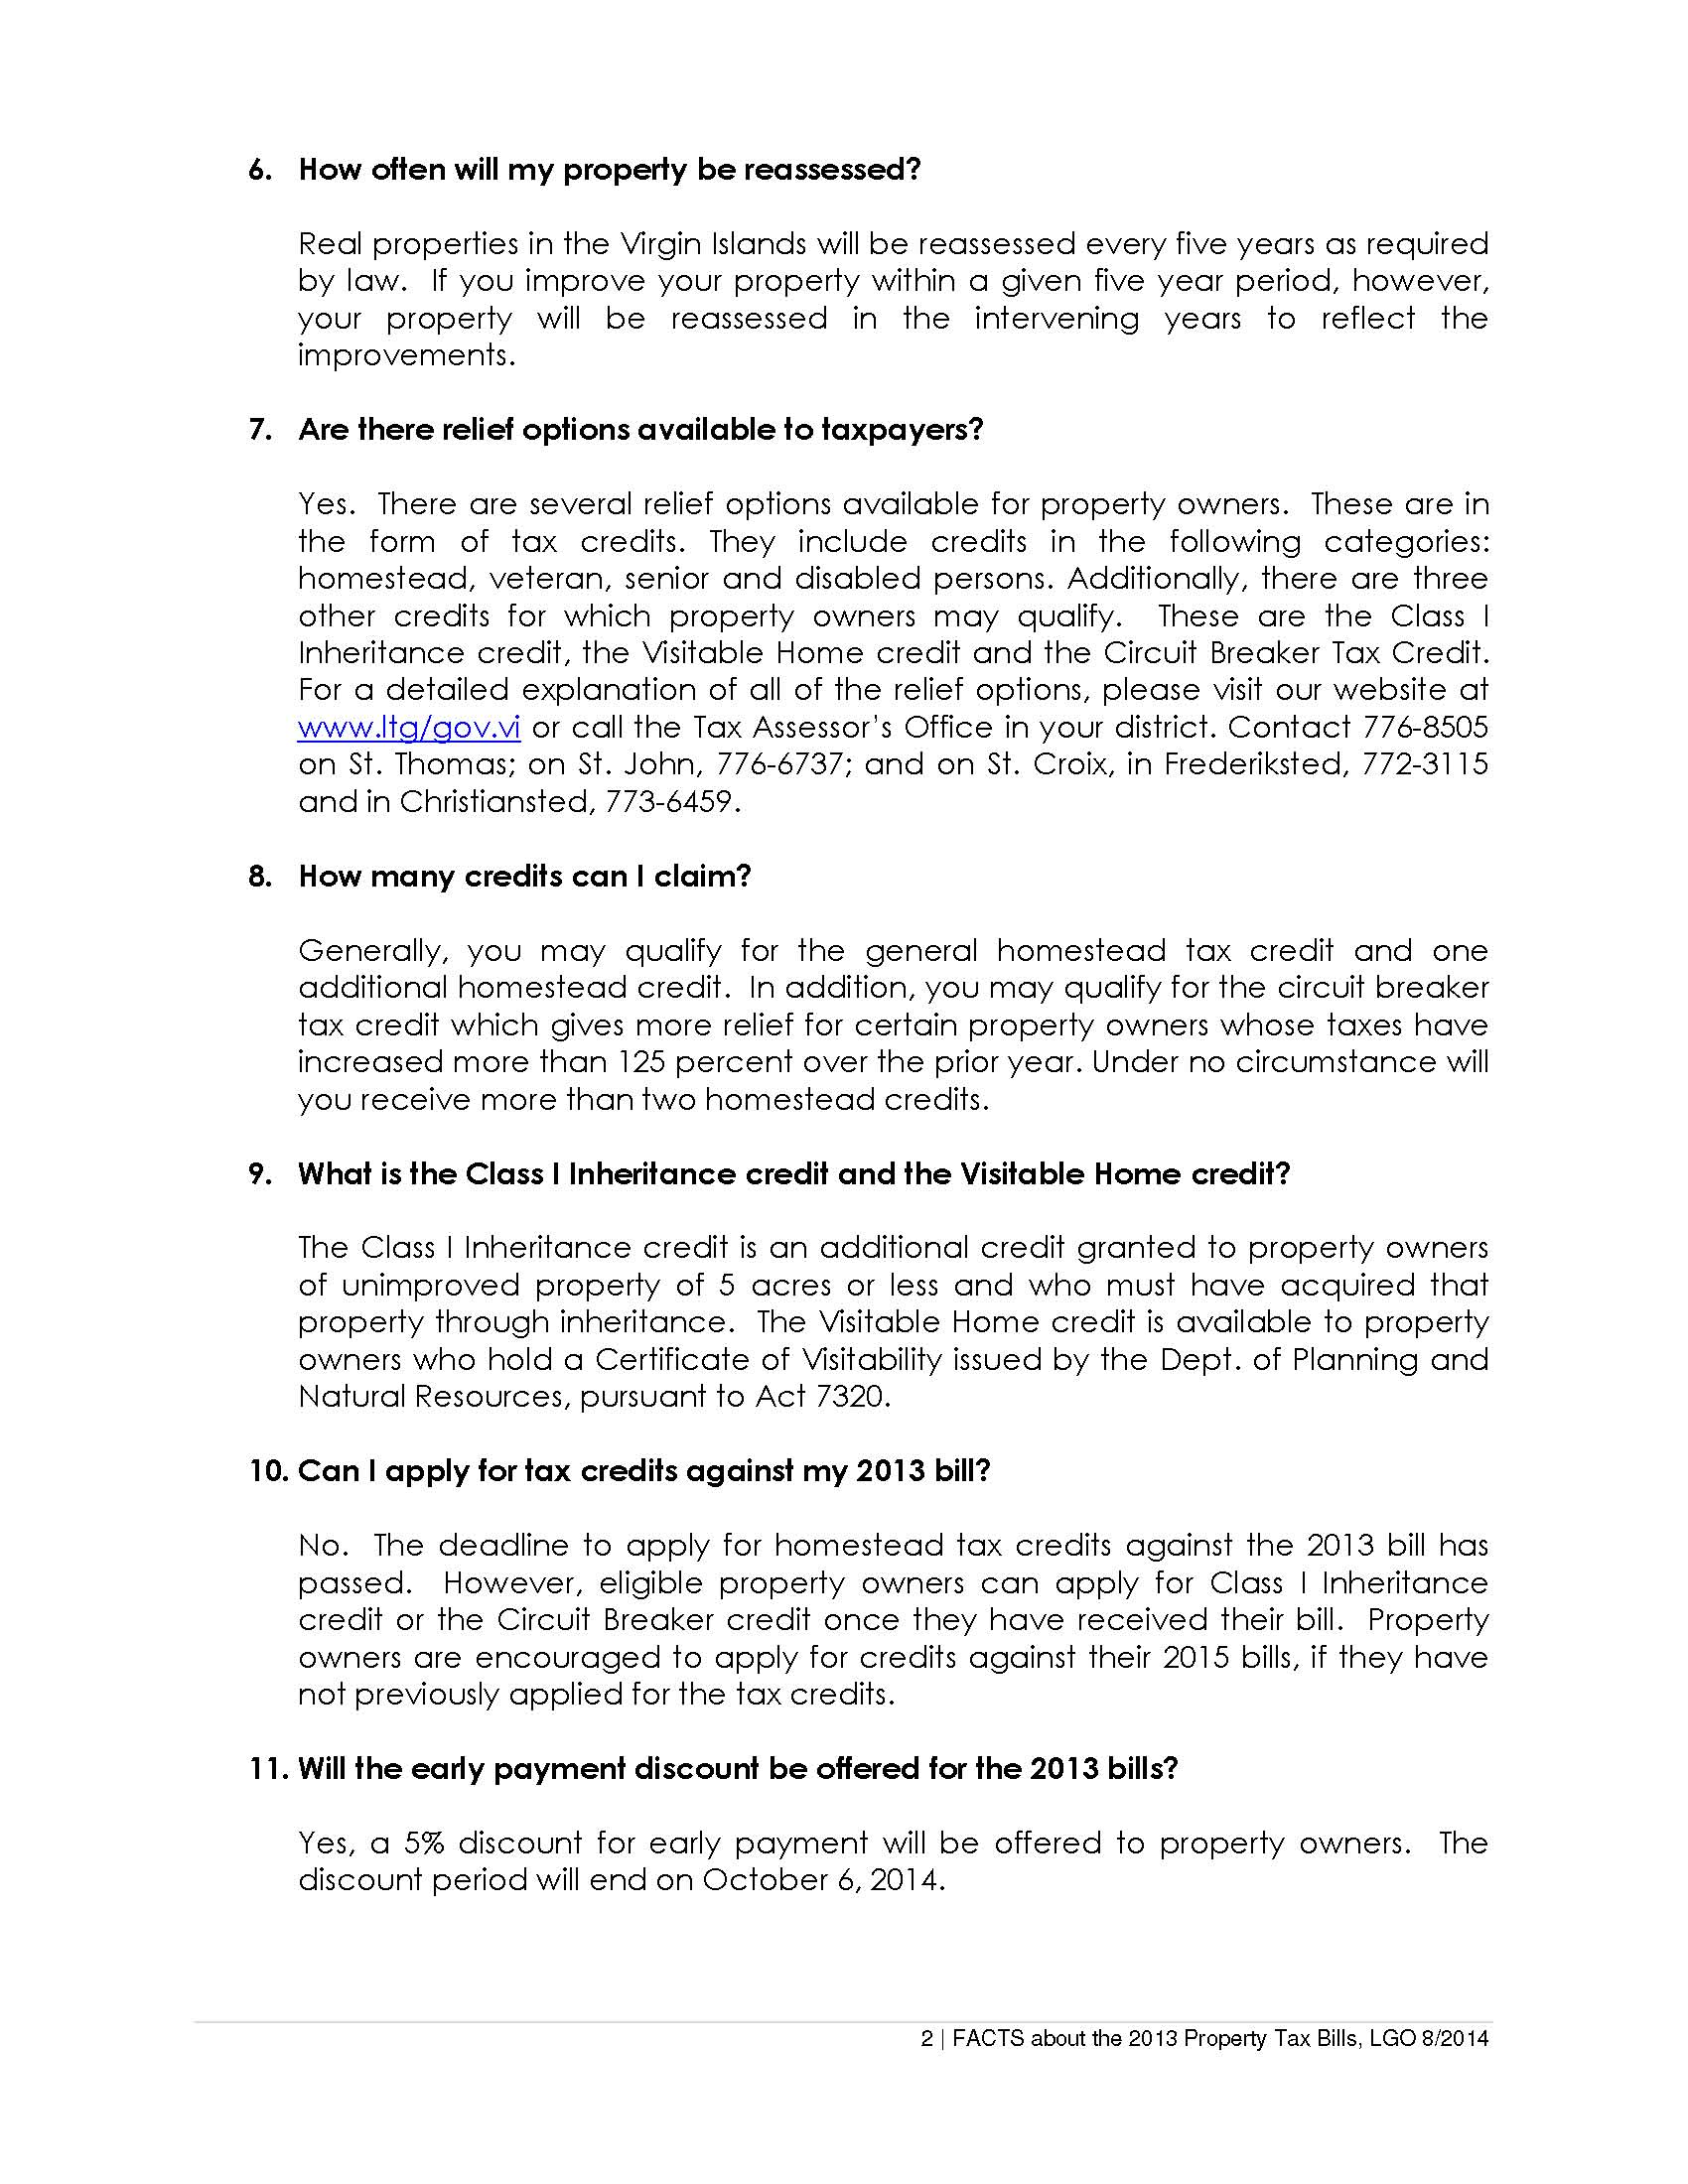 FAQs-about-the-2013-Property-Tax-Bills_Page_2.jpg